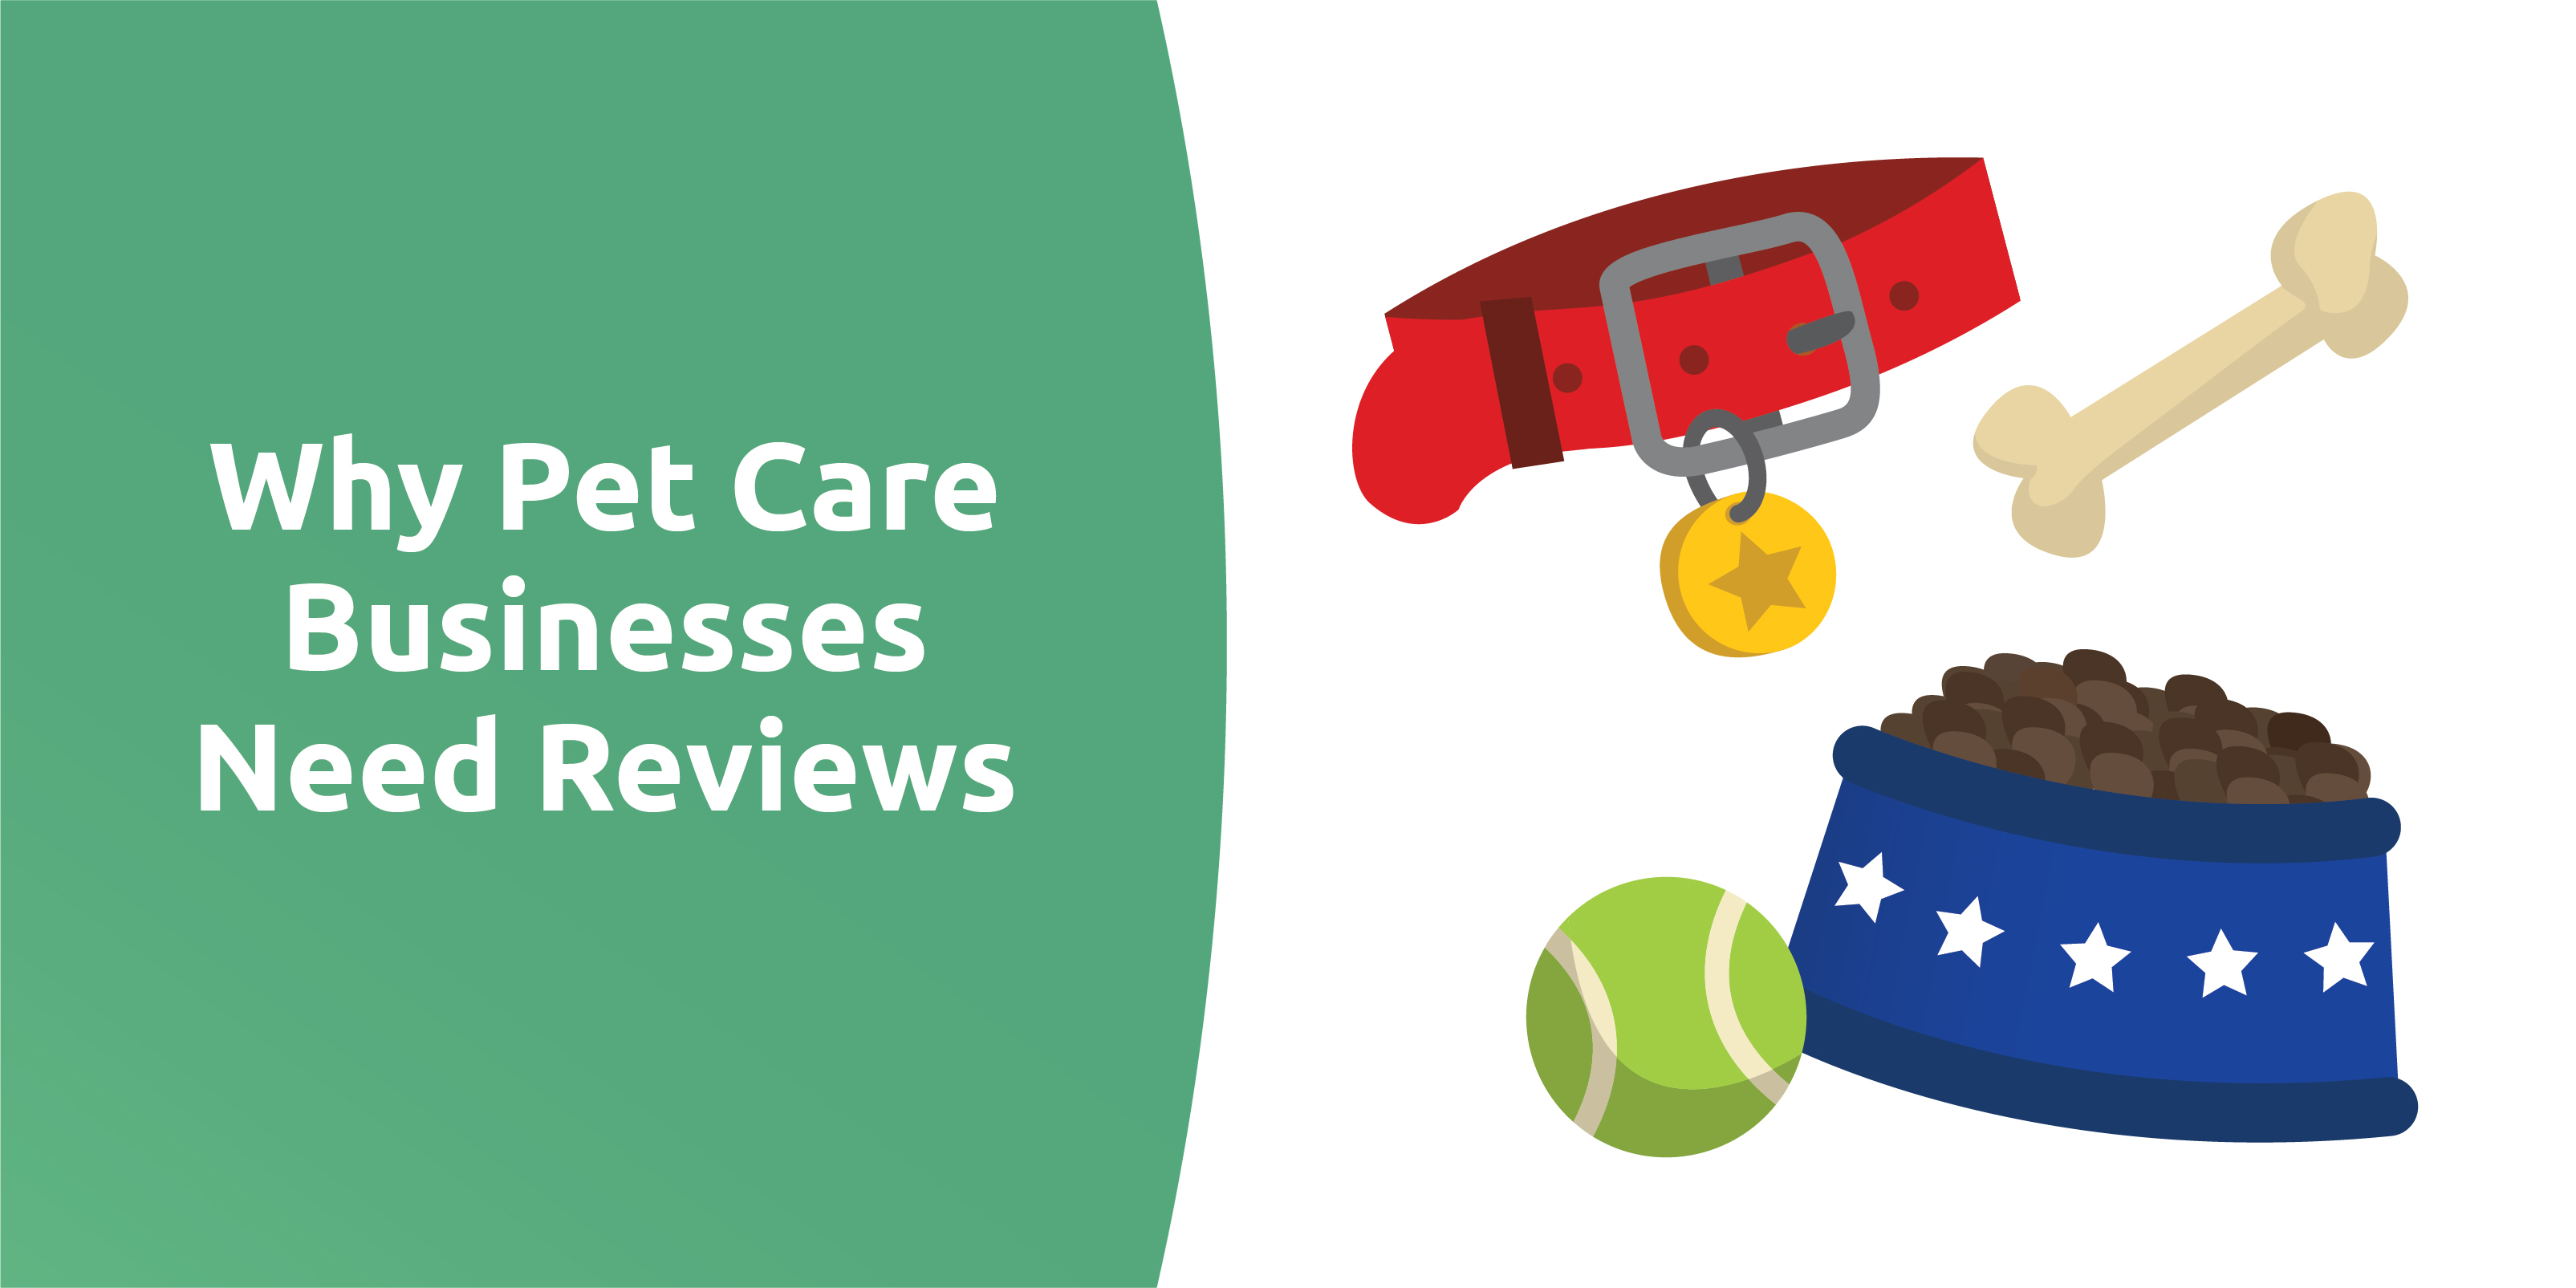 Reasons why pet care businesses need online reviews